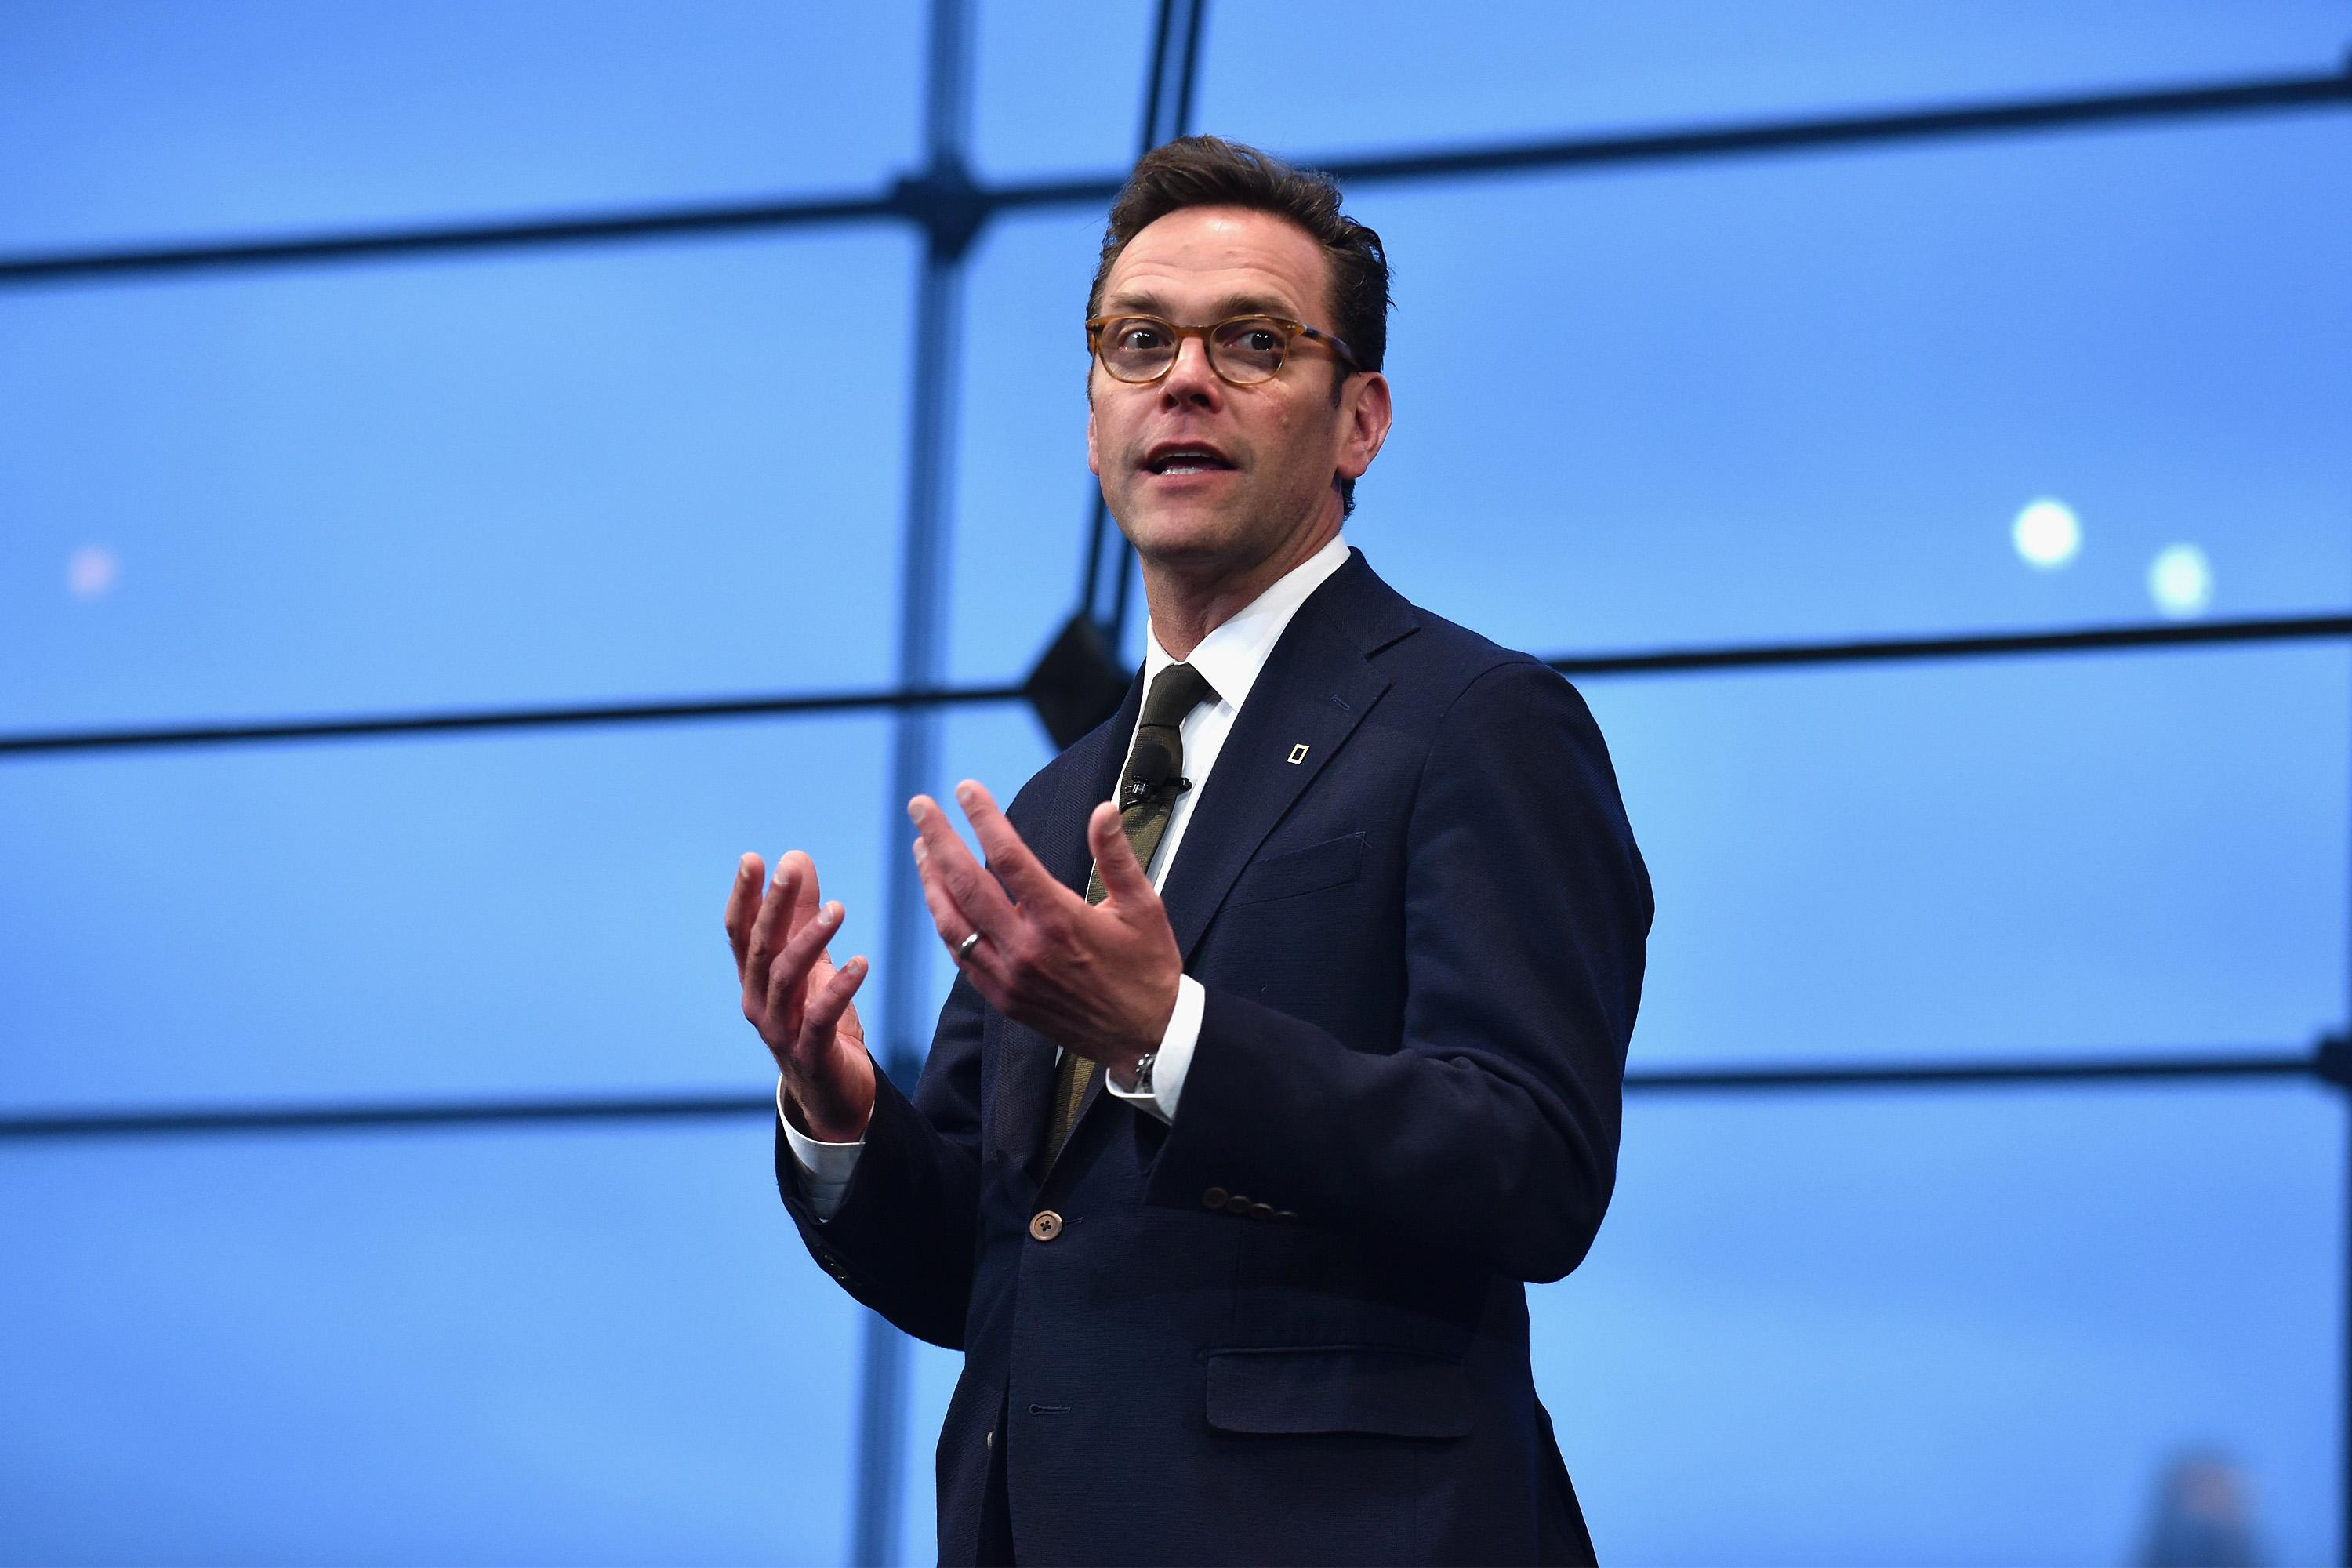 James Murdoch resigned from the News Corp. board, signaling a rift in the powerful media family